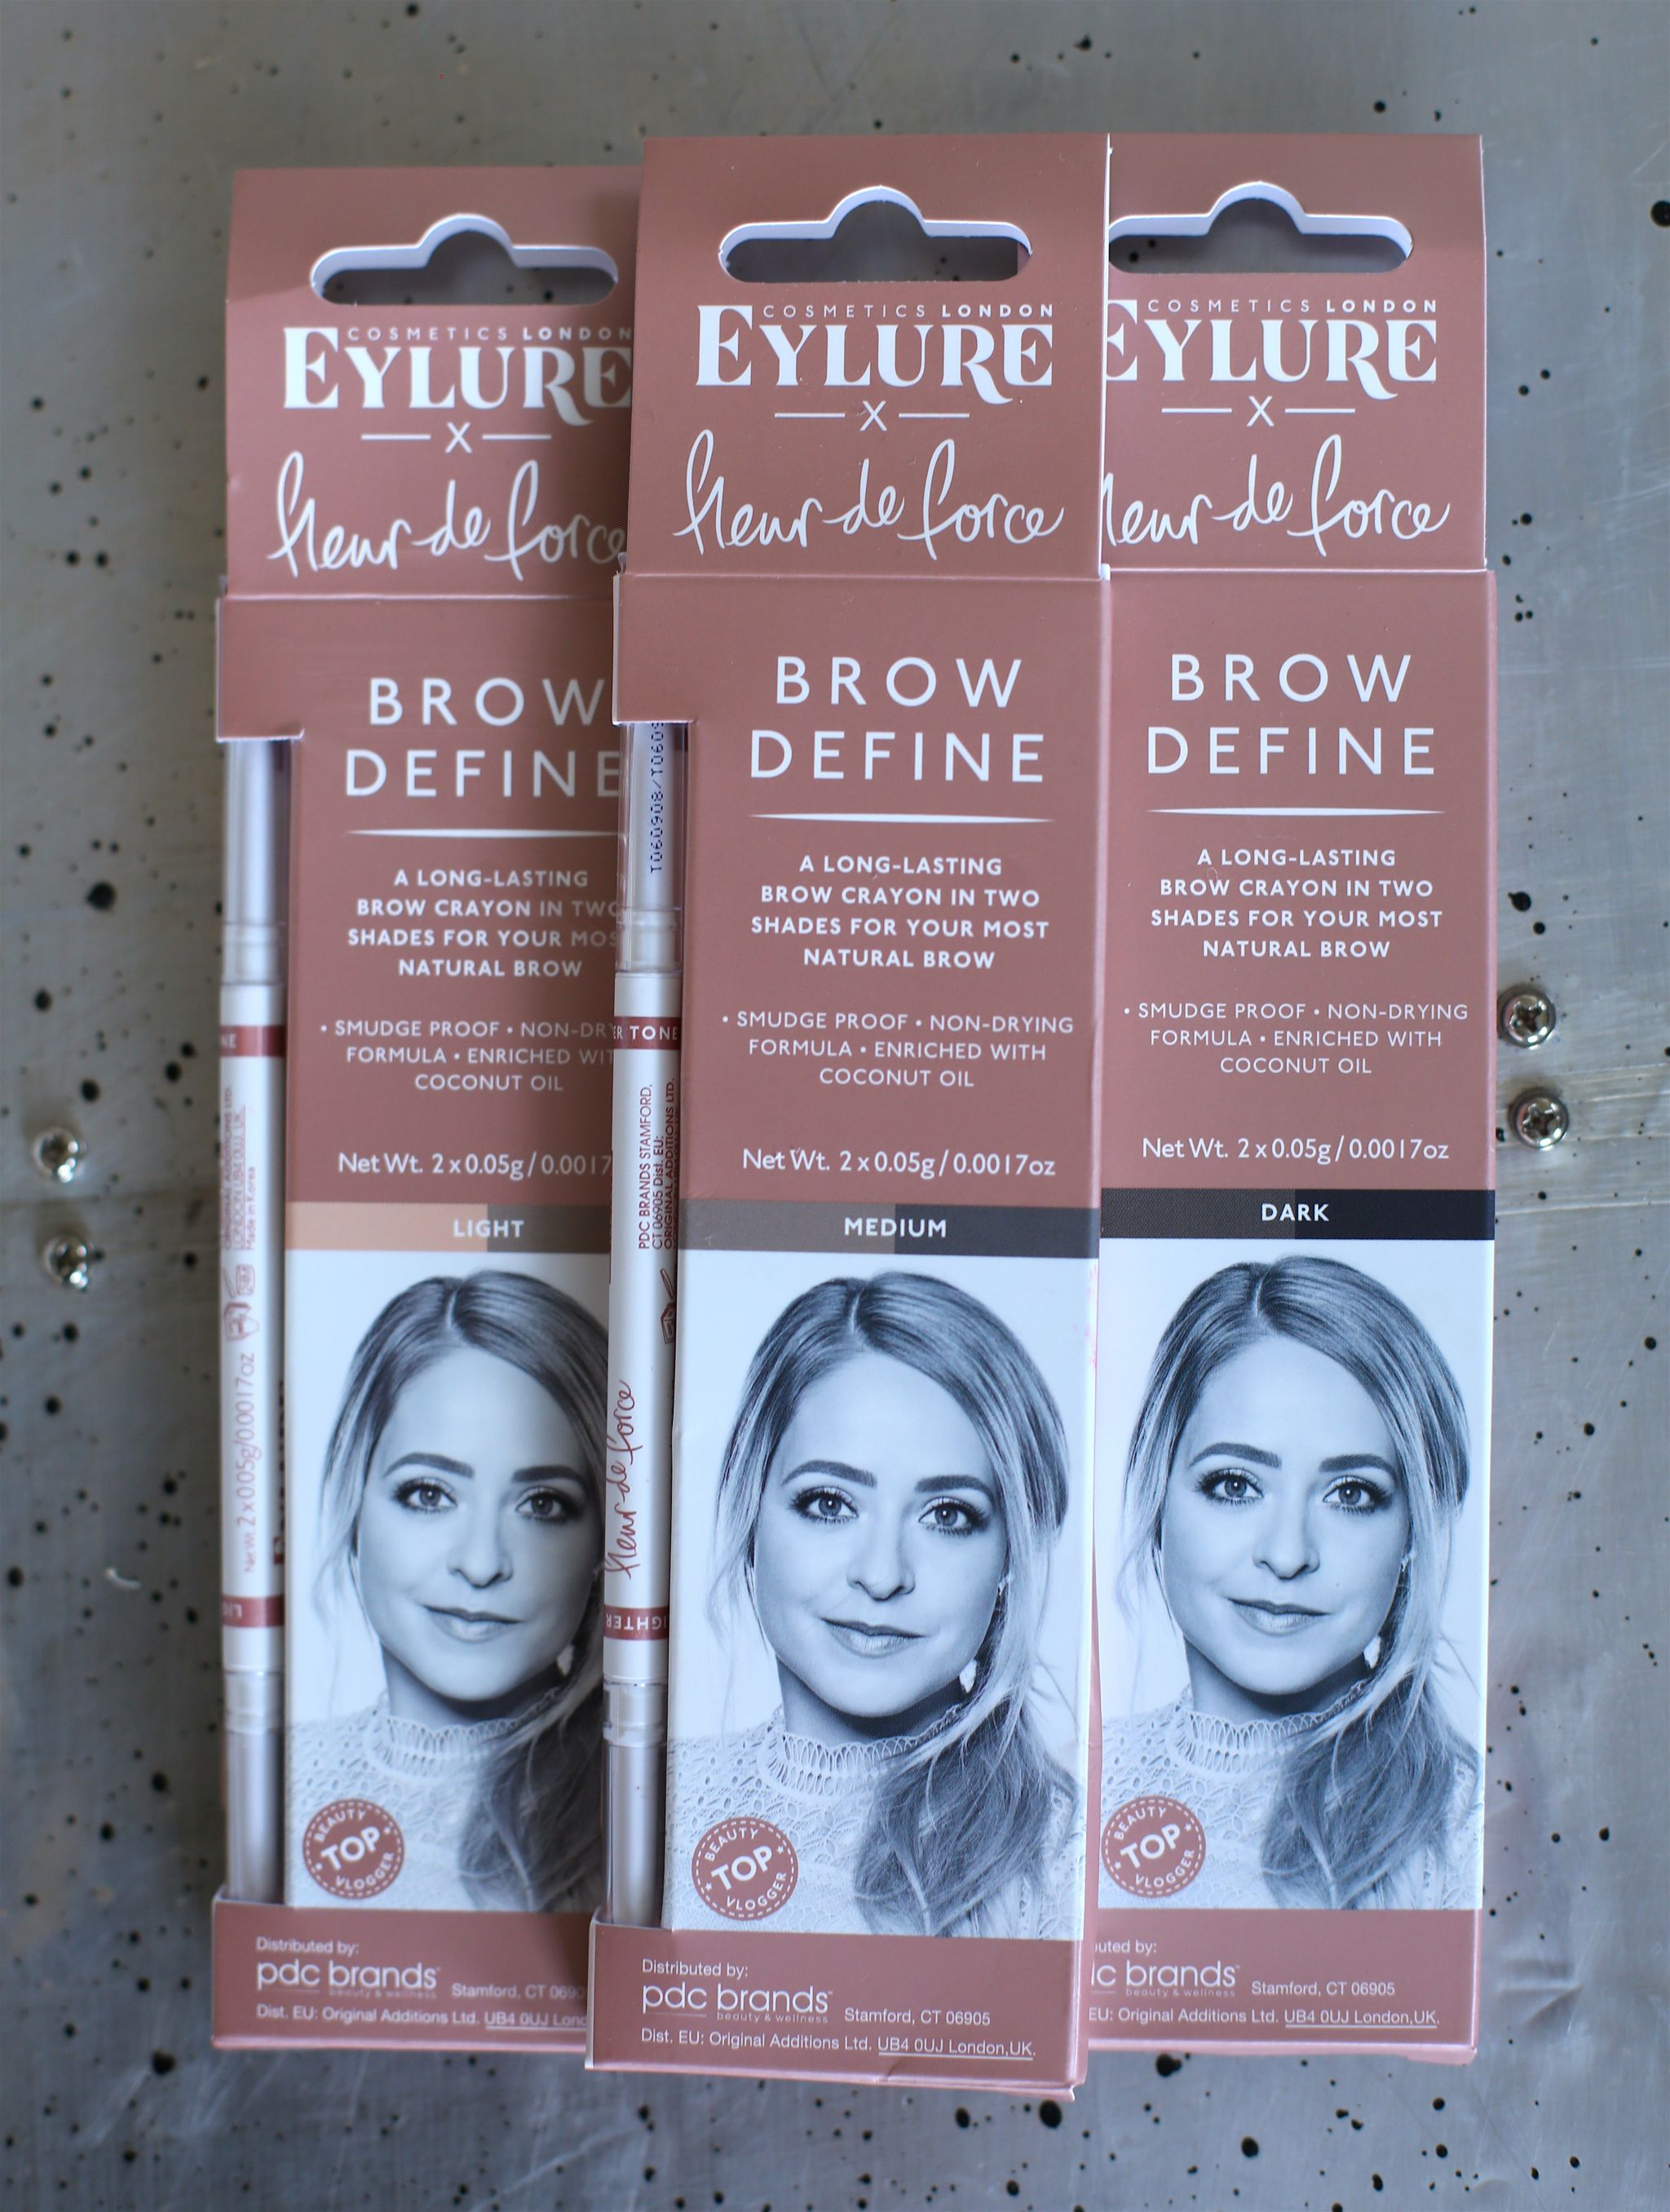 760674dc5eb The new brow define pencils are available from today, priced at £12 each  and exclusive to Boots stores and online HERE.